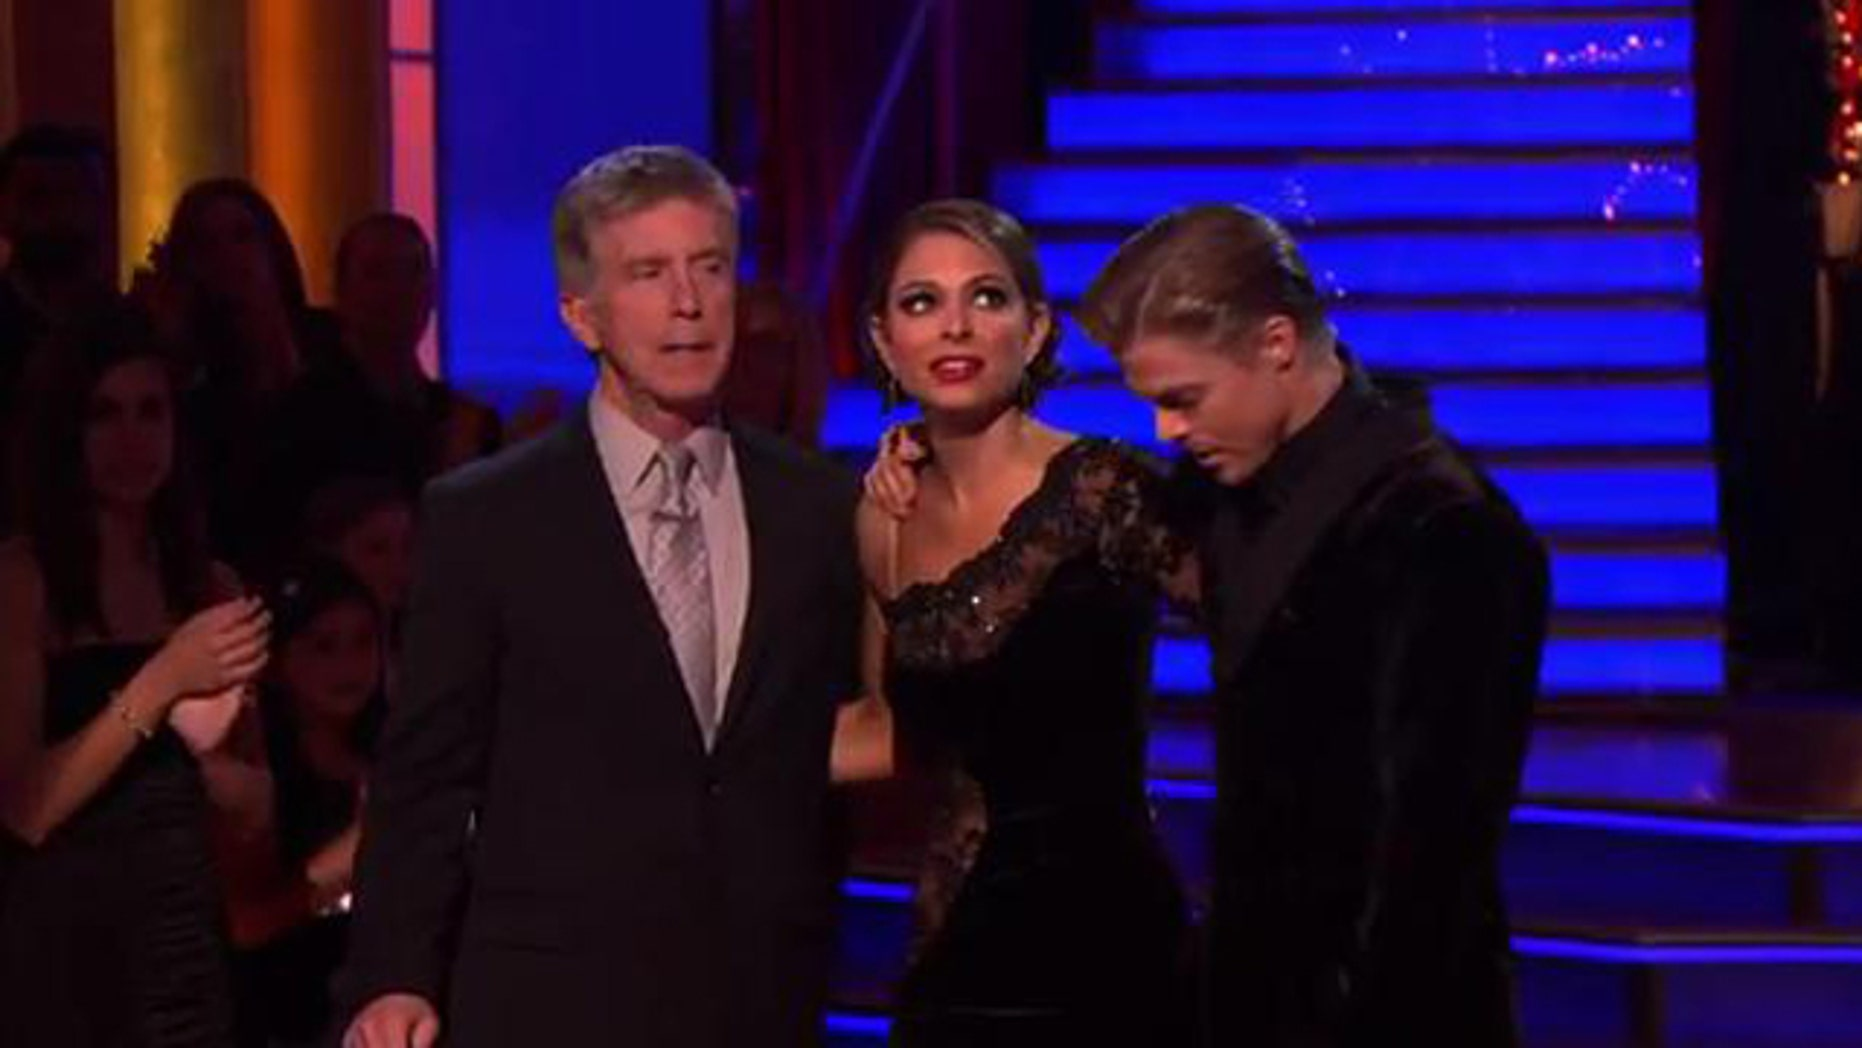 May 14, 2012: TV host Maria Menounos and dance partner Derek Hough Monday night on DWTS.